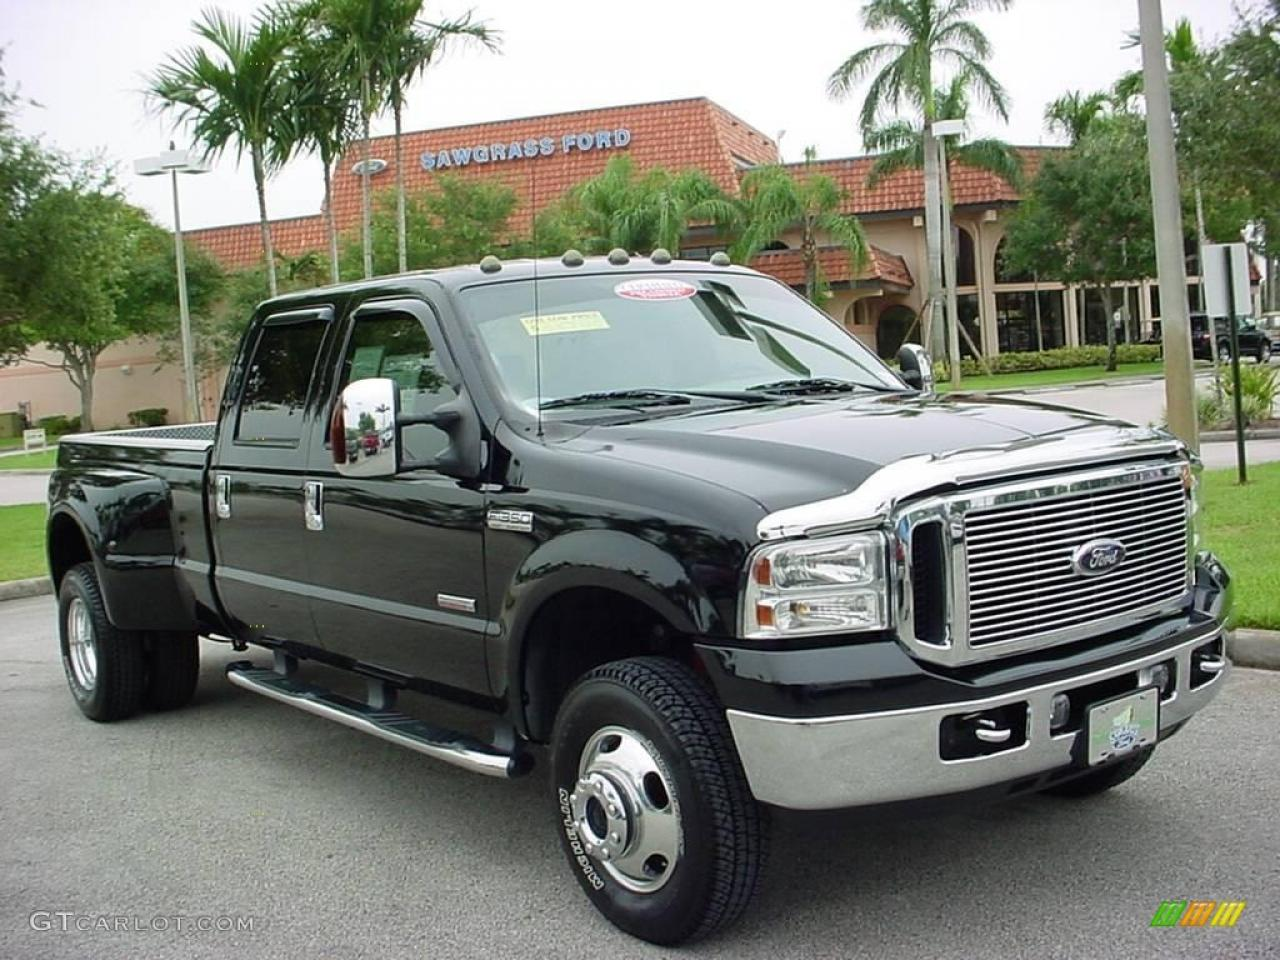 2006 ford f 350 super duty information and photos zombiedrive. Black Bedroom Furniture Sets. Home Design Ideas